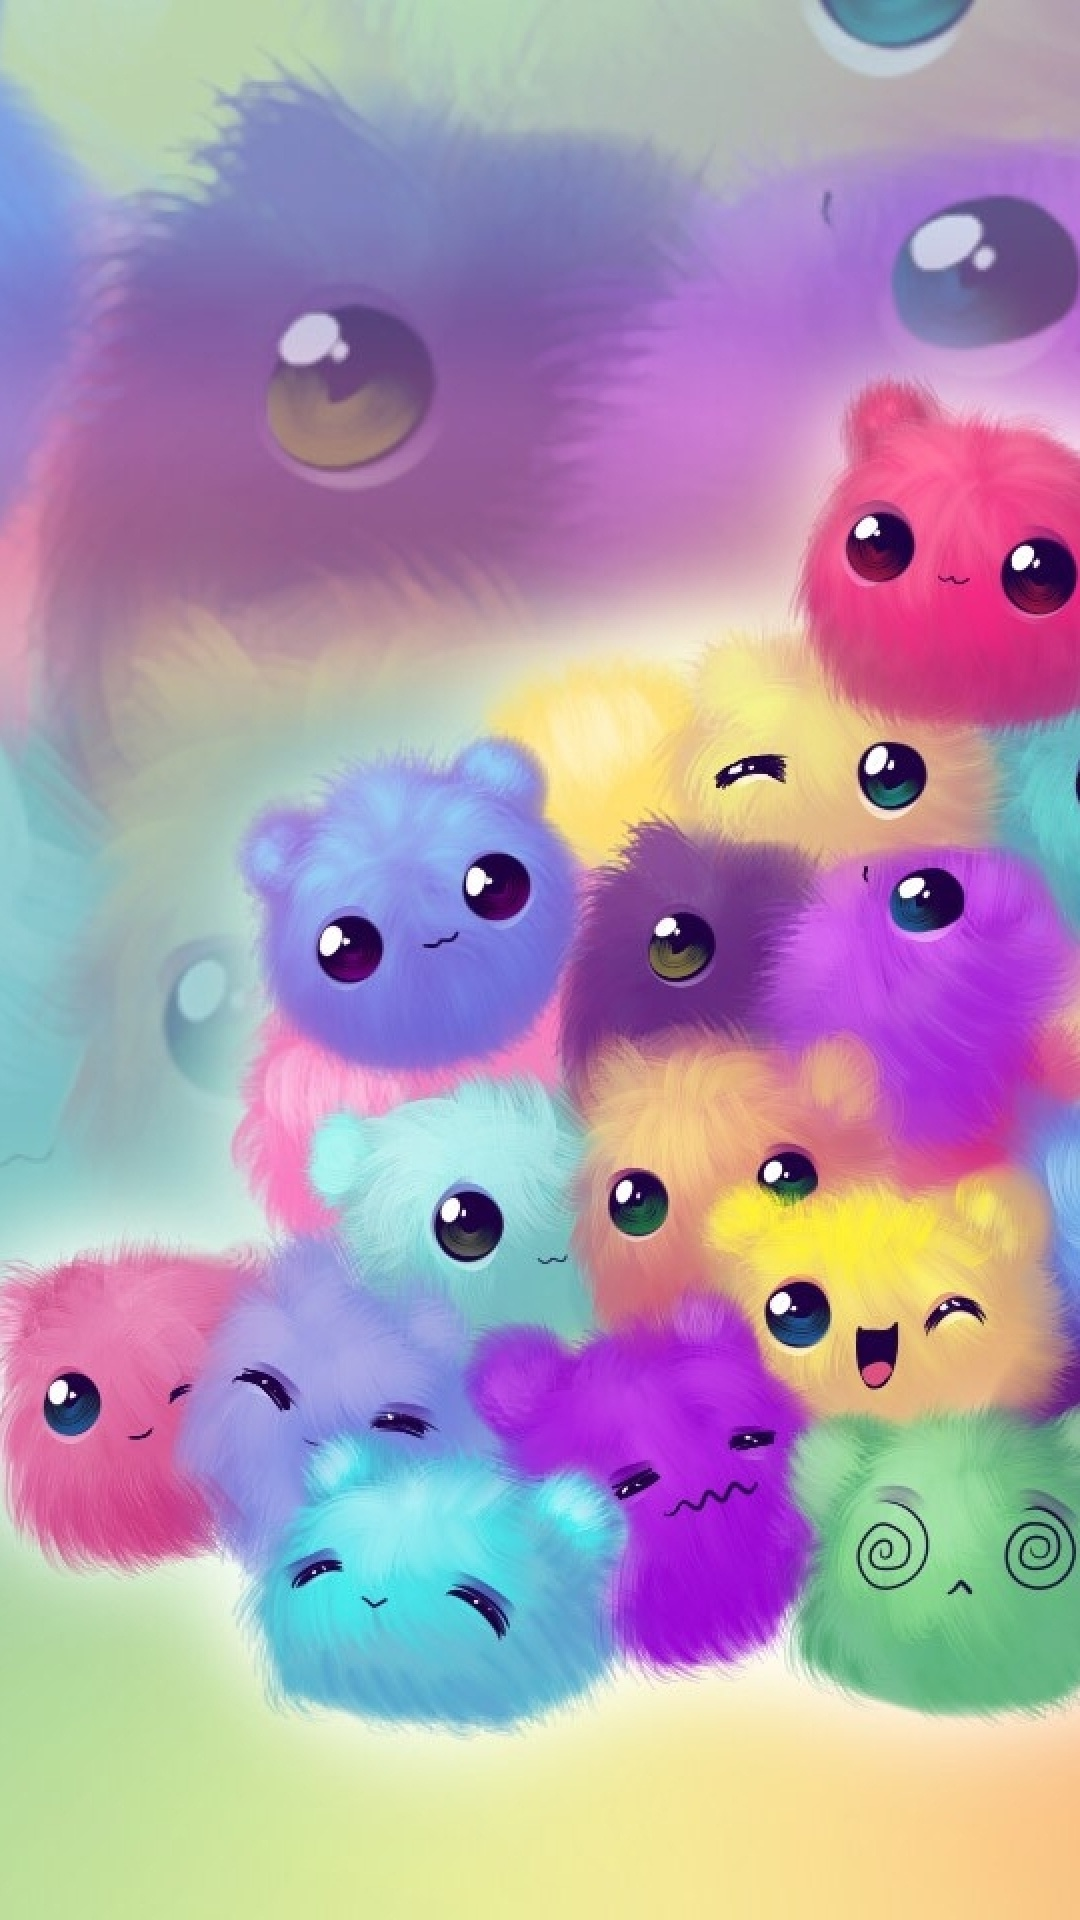 Cute Girly Wallpapers For Android Cute Characters Iphone Wallpaper